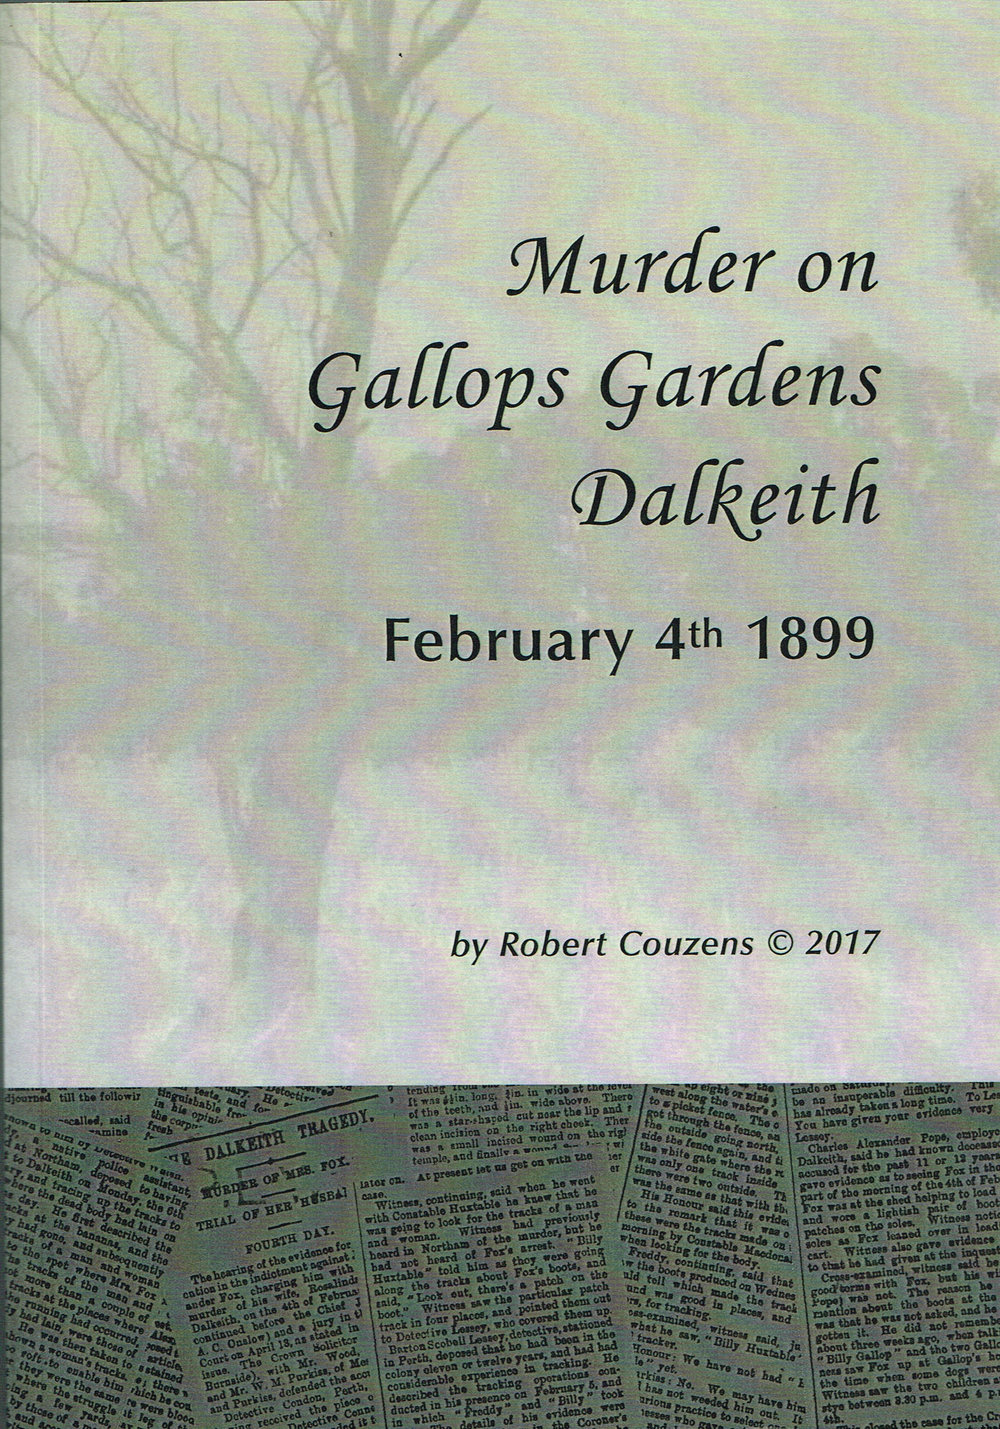 Murder on Gallops Gardens Dalkeith : February 4th 1899   Robert Couzens, edited by Dr John Hall.